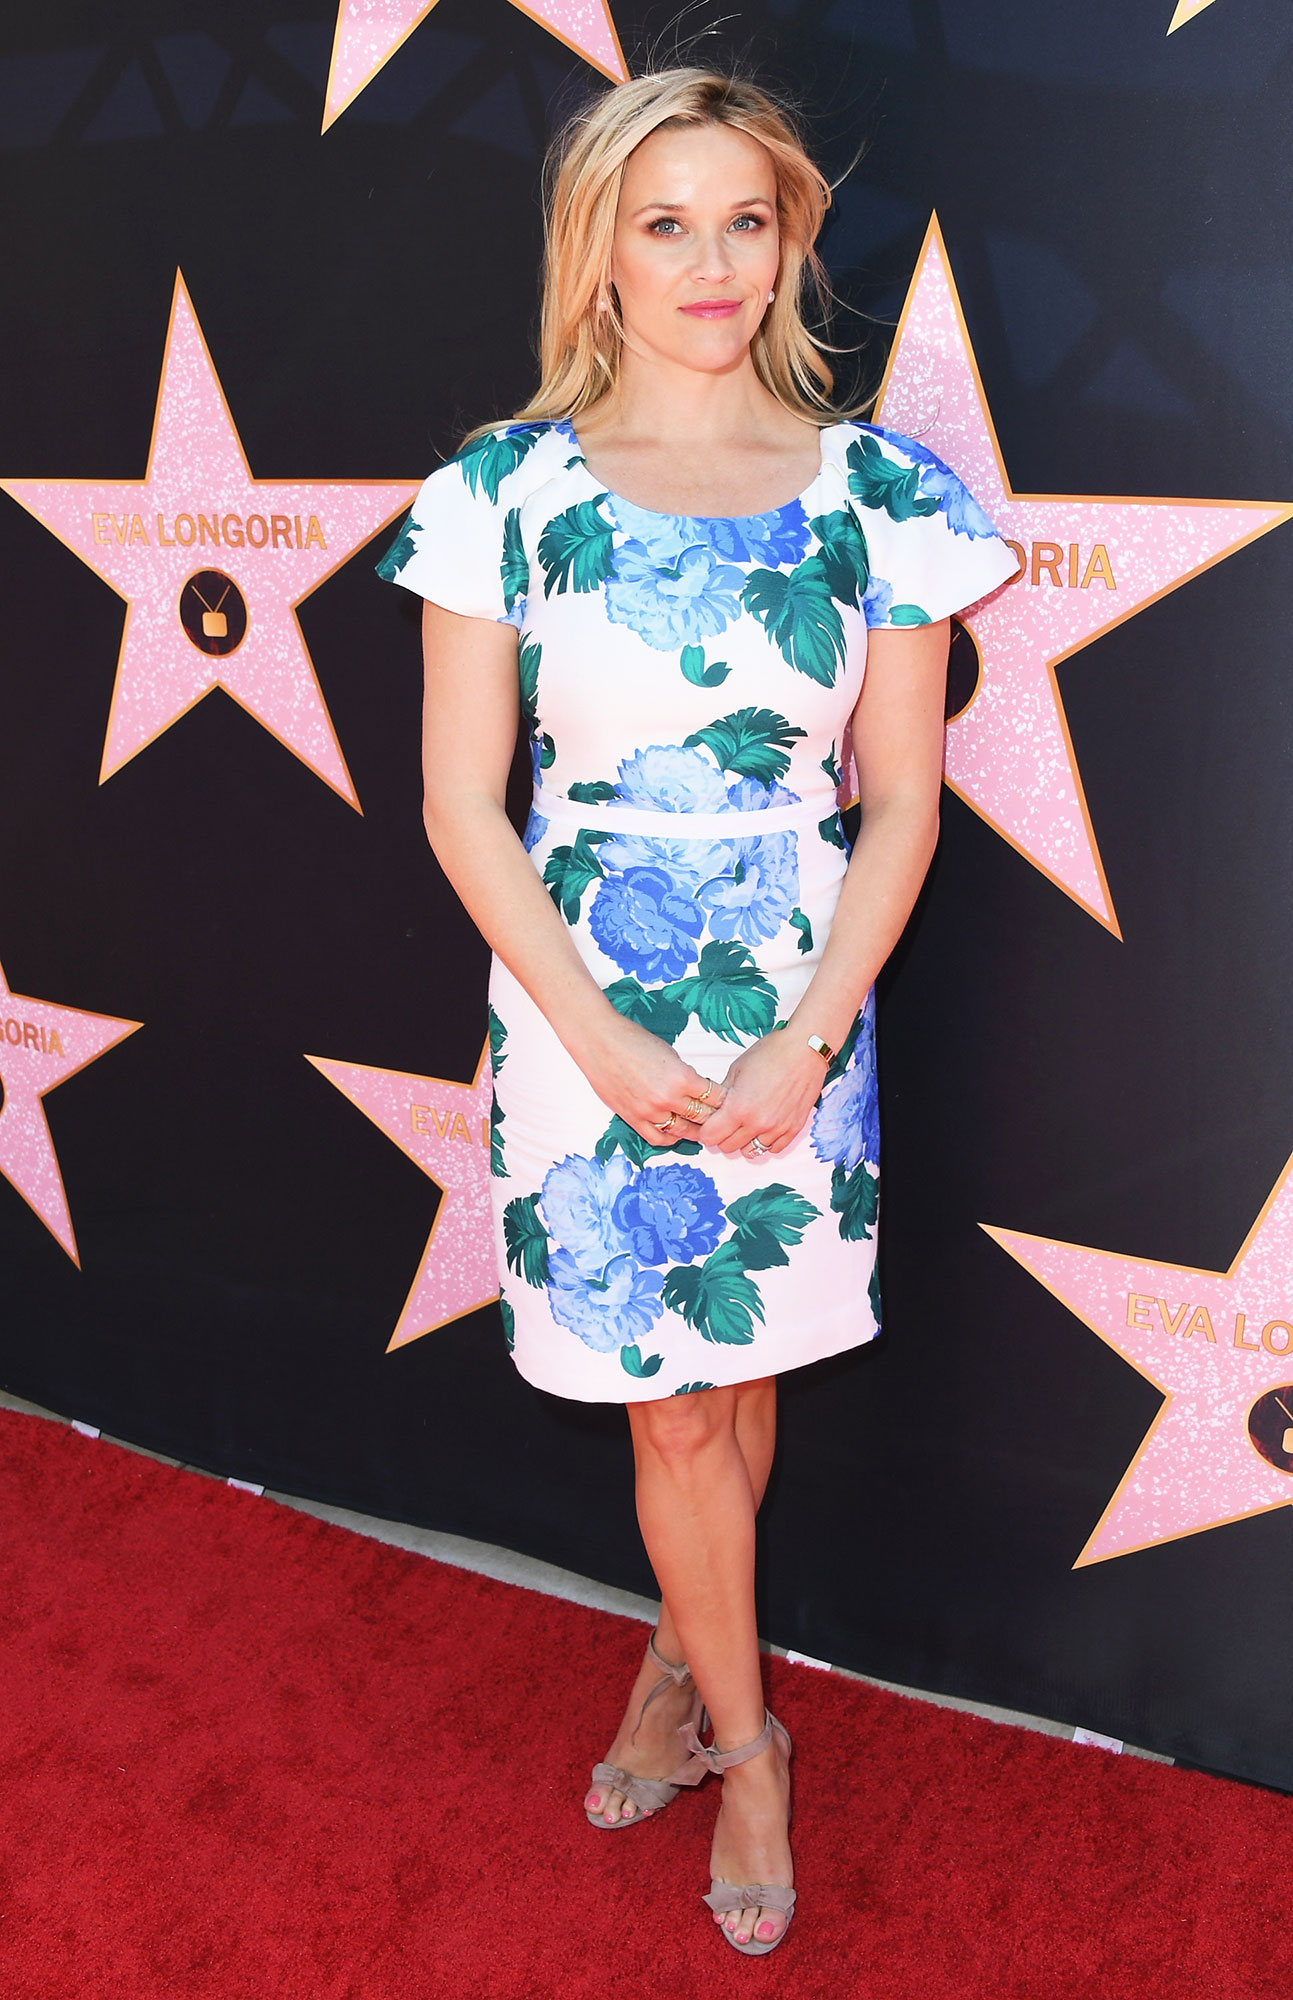 Birthday Girl Reese Witherspoon's Best Red Carpet Looks - To celebrate Eva Longoria's Hollywood Star on April 16, 2018, the Legally Blonde actress looked like a spring dream in a floral print dress from her very-own Draper James.